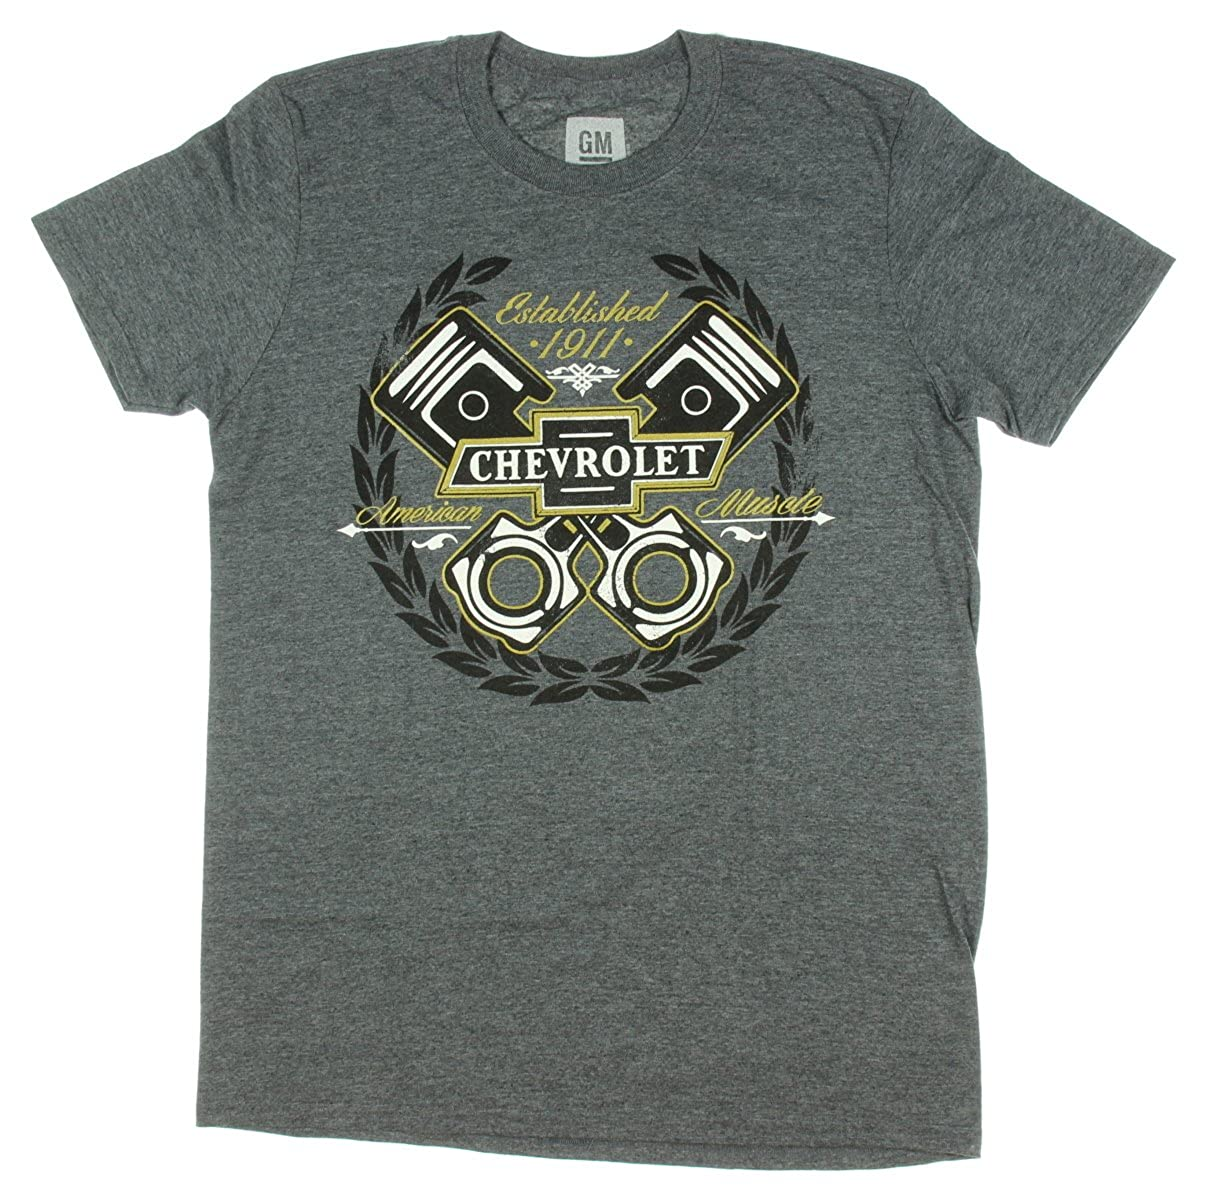 Chevrolet American Muscle Established 1911 Licensed Graphic T-Shirt